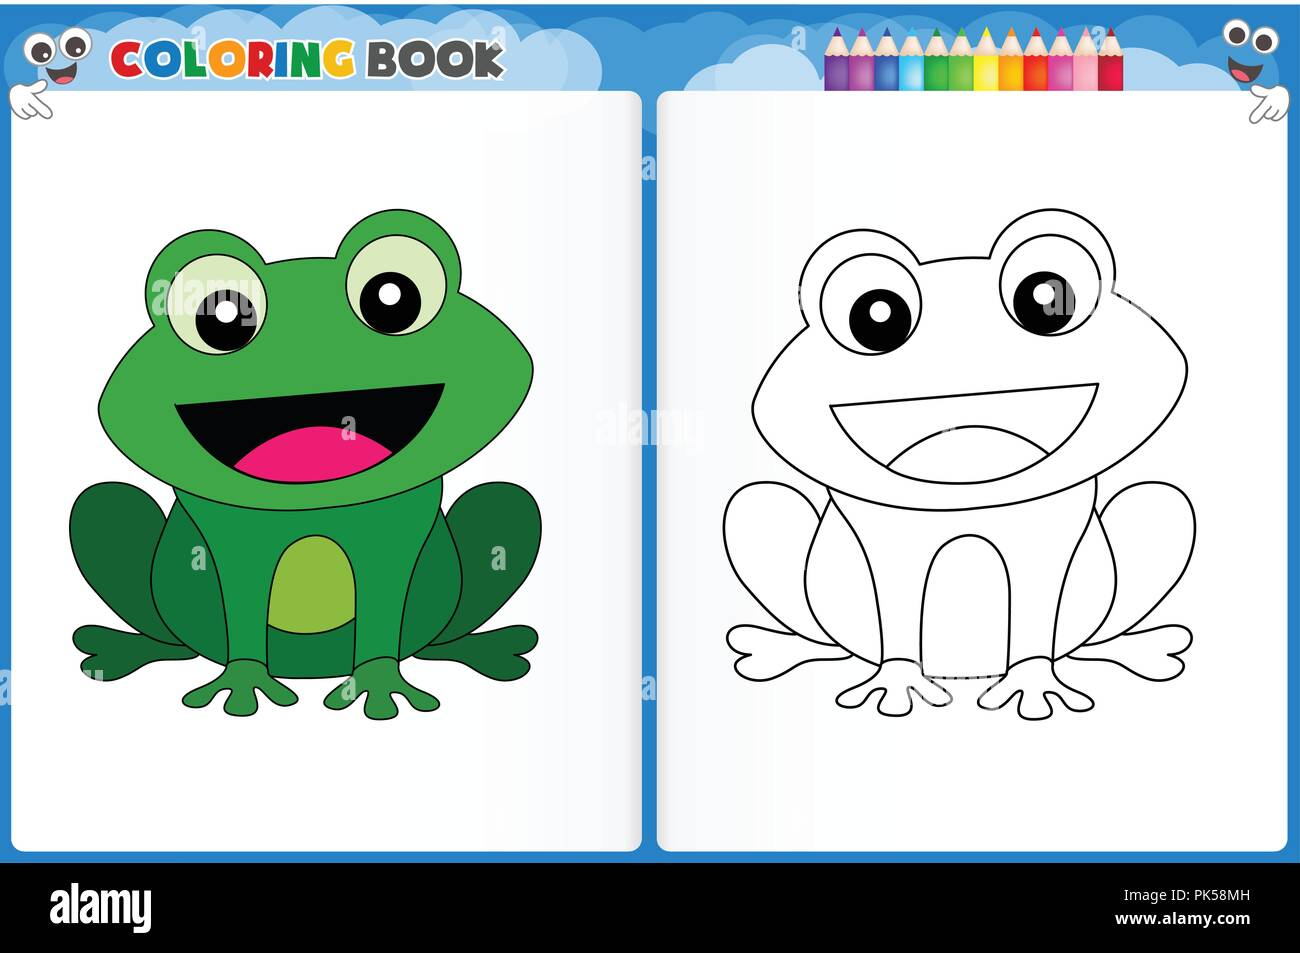 Coloring Page Cute Frog With Colorful Sample Printable Worksheet For Preschool Kindergarten